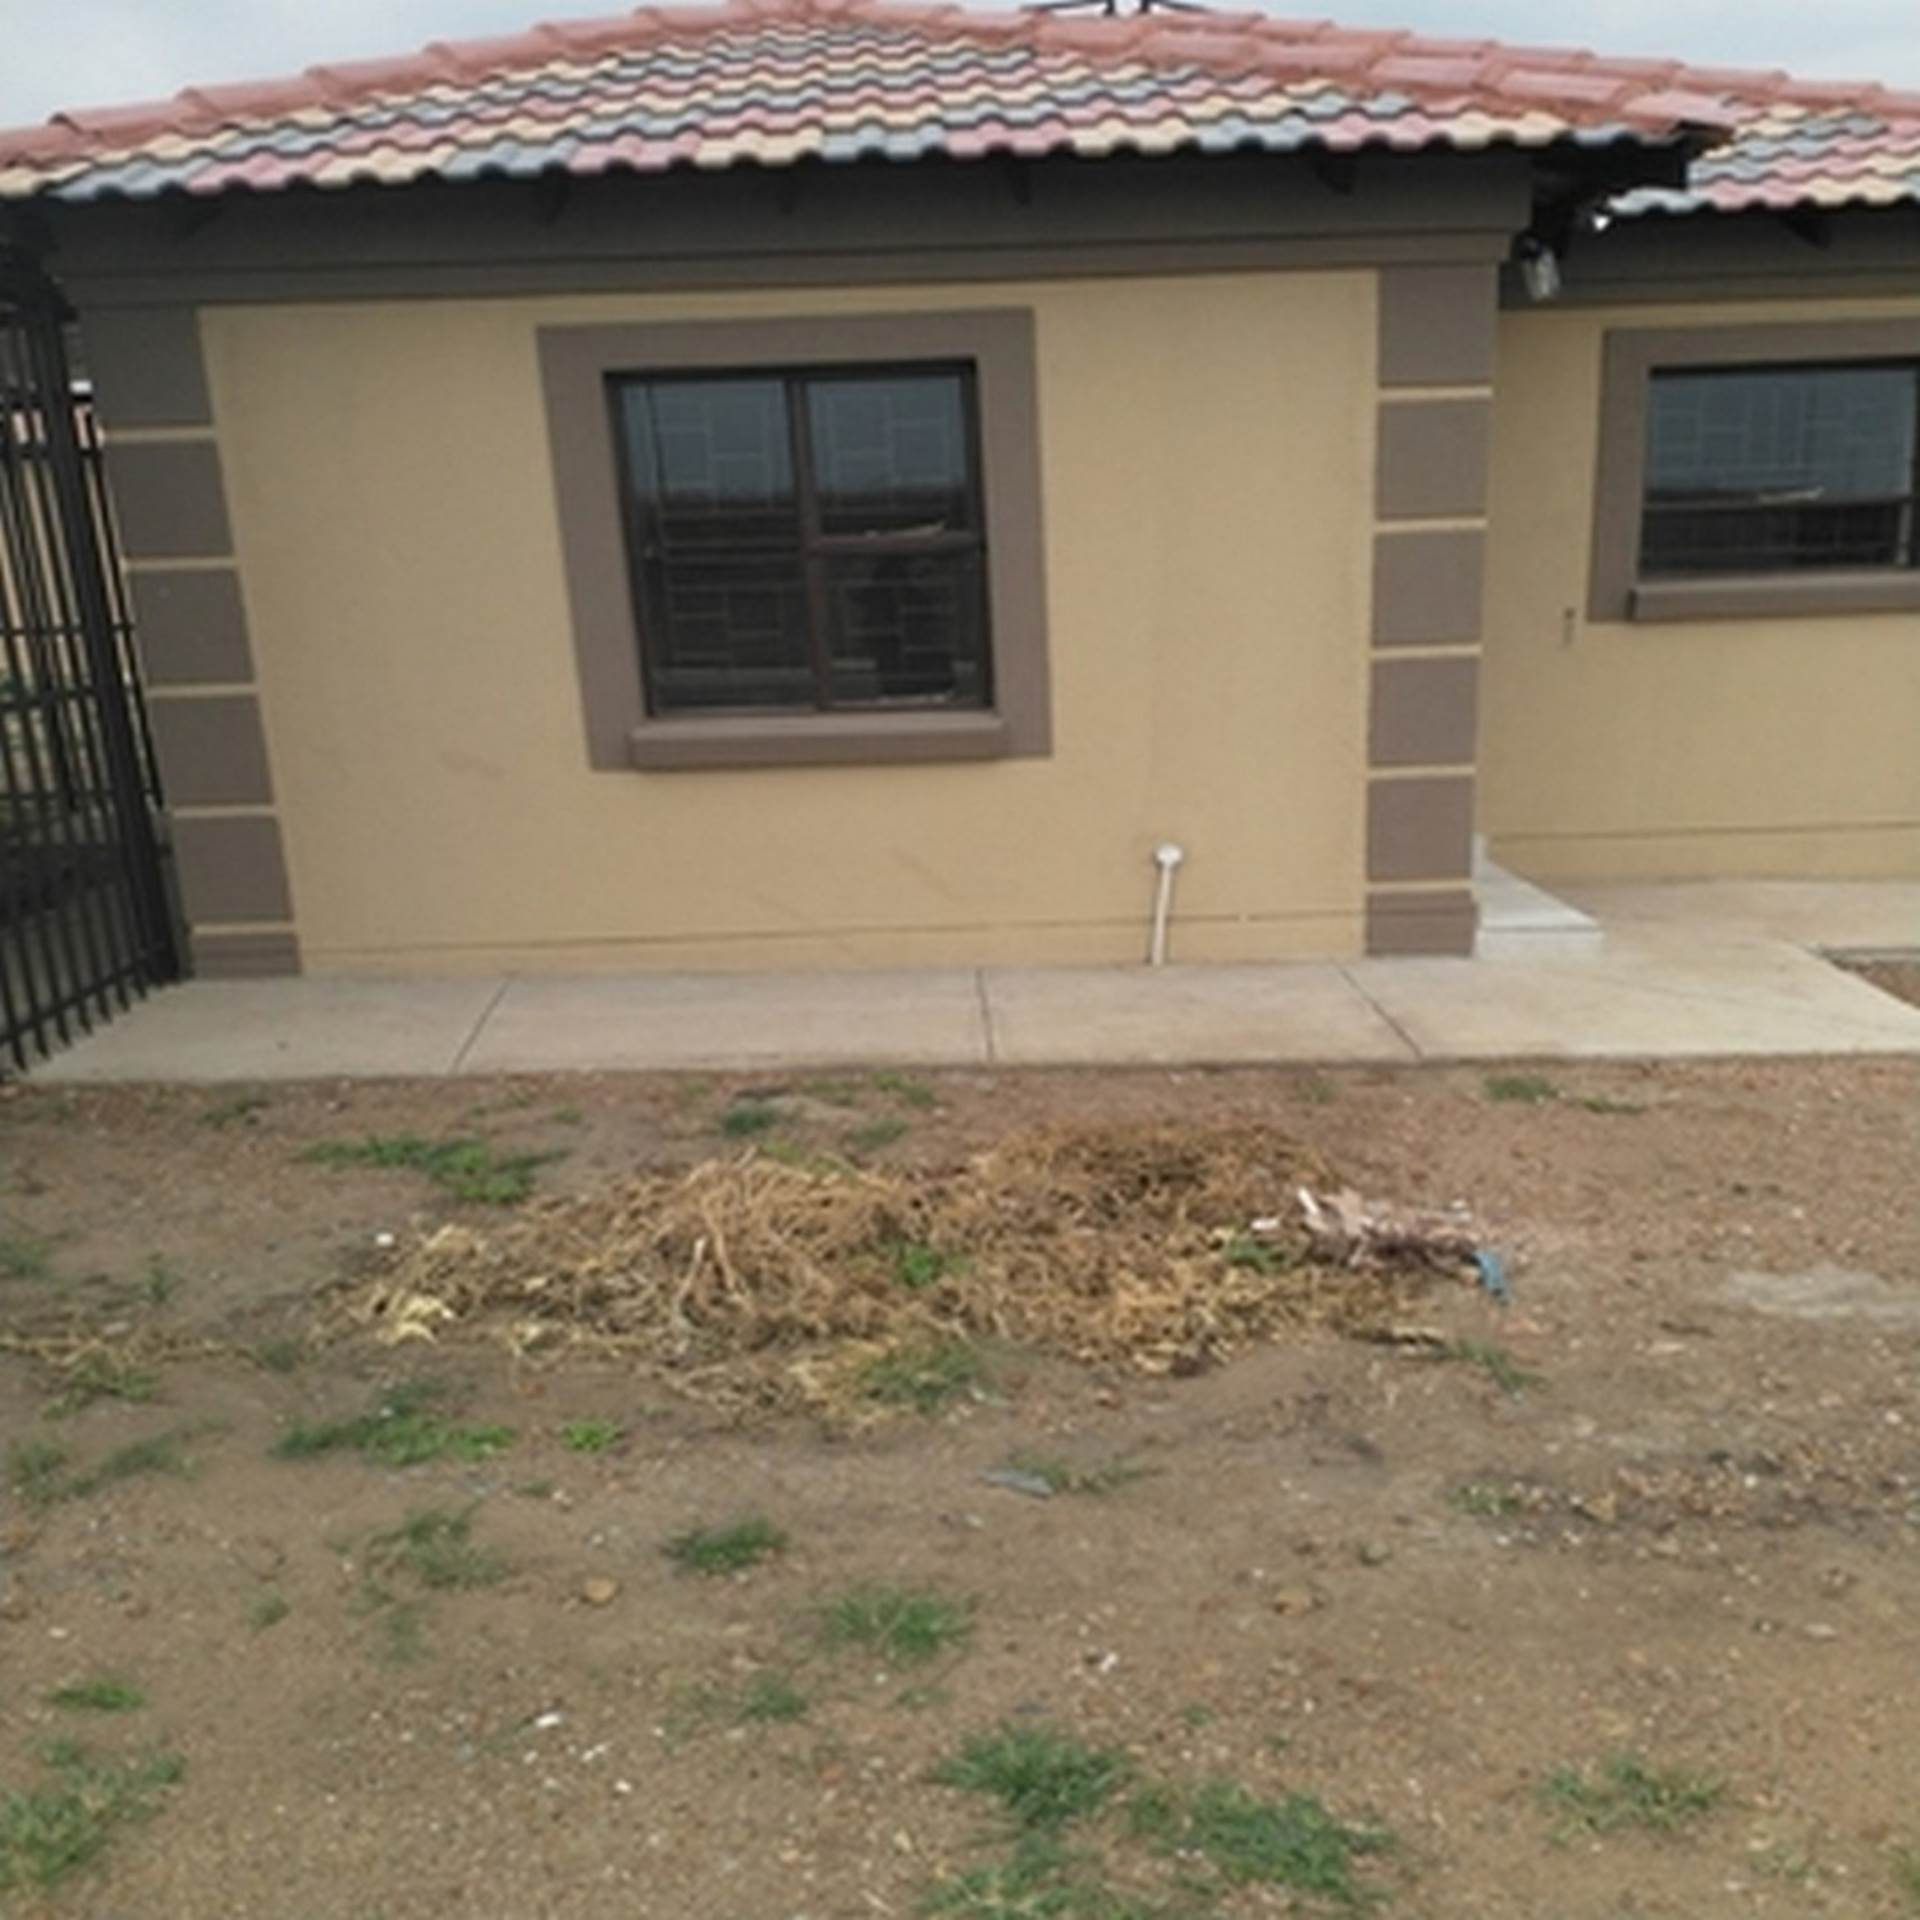 House To Rent In Emdo Park, Polokwane, Limpopo For R 4,900